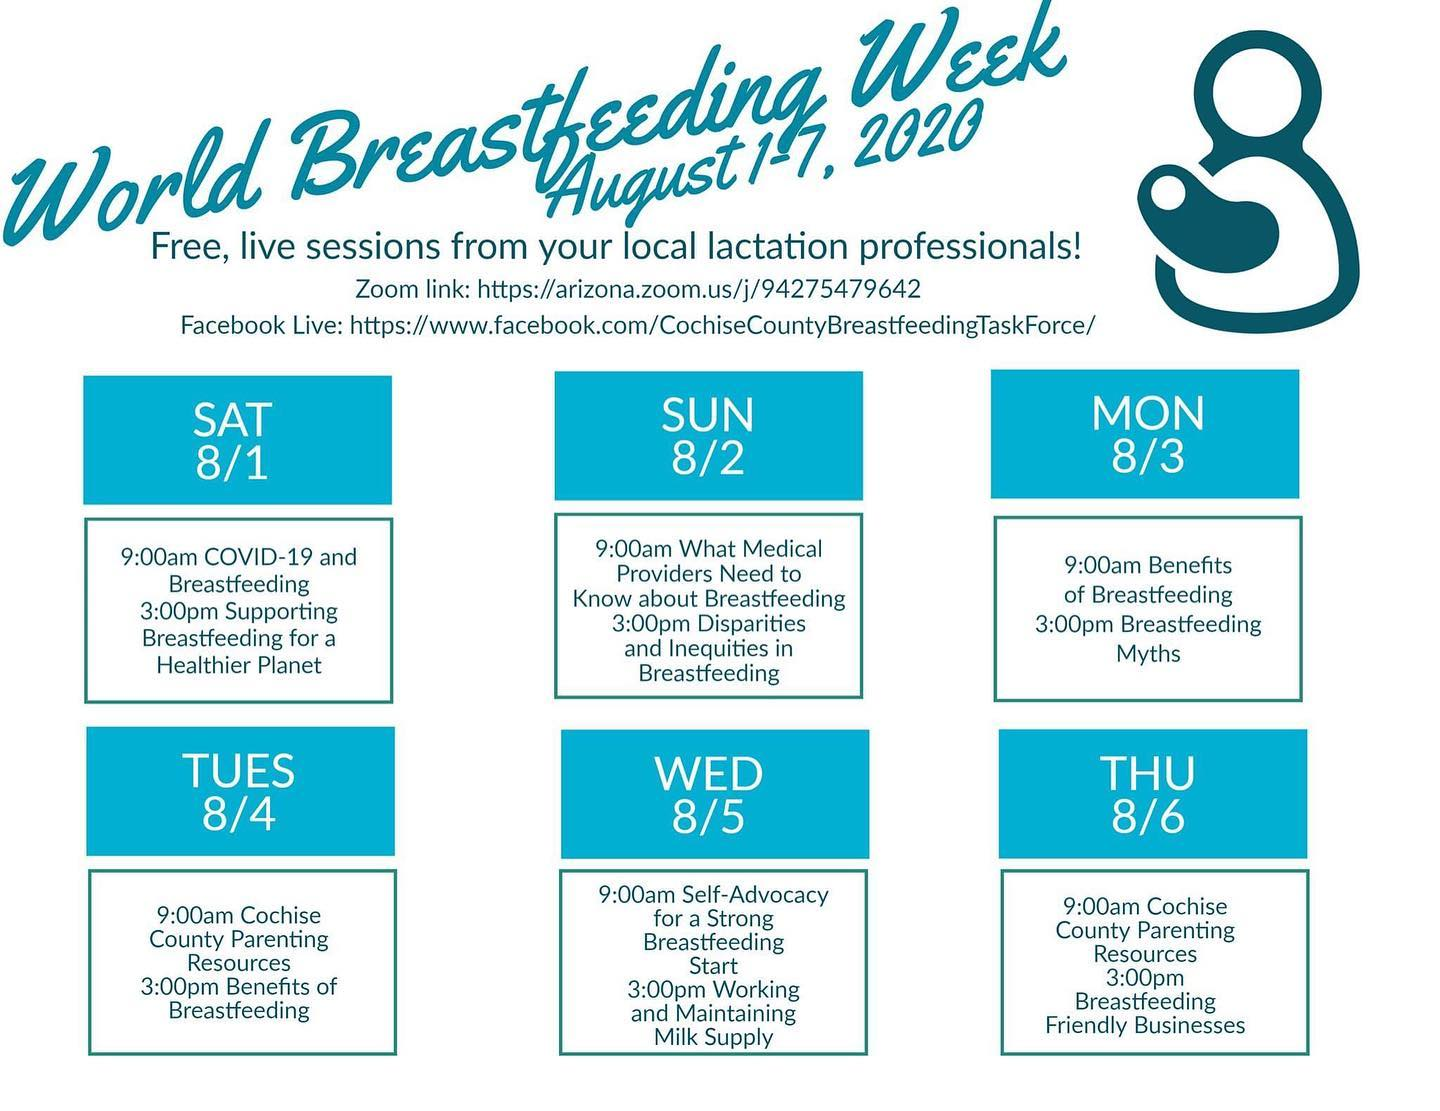 Cochise County Breastfeeding TaskForce WBW Live Sessions